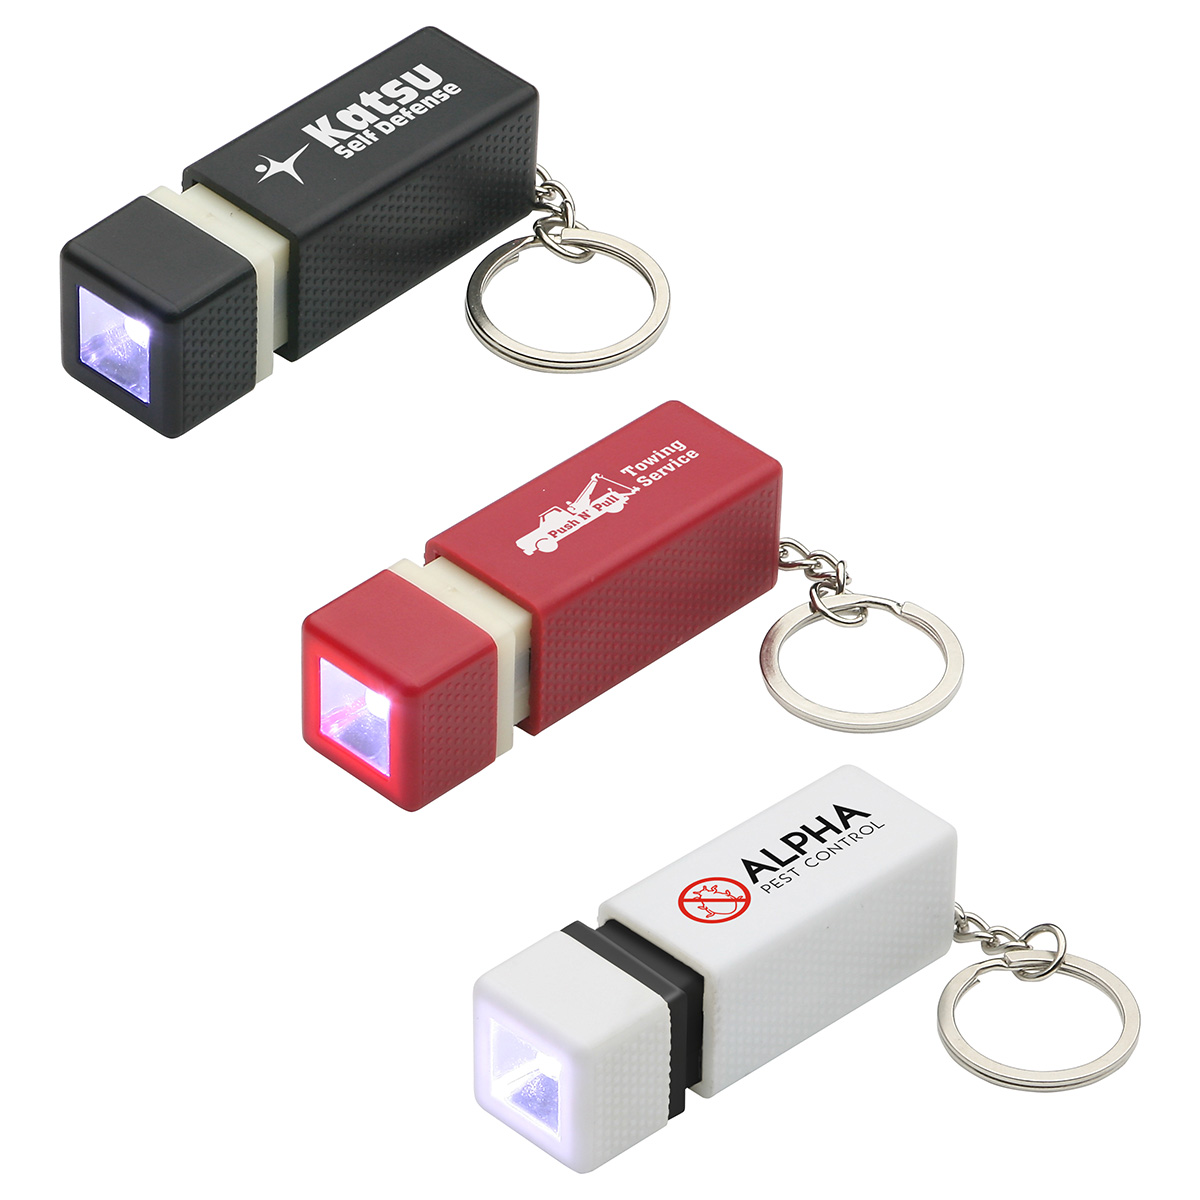 Pull-Lite LED Keychain, WLT-PL11 - 1 Colour Imprint